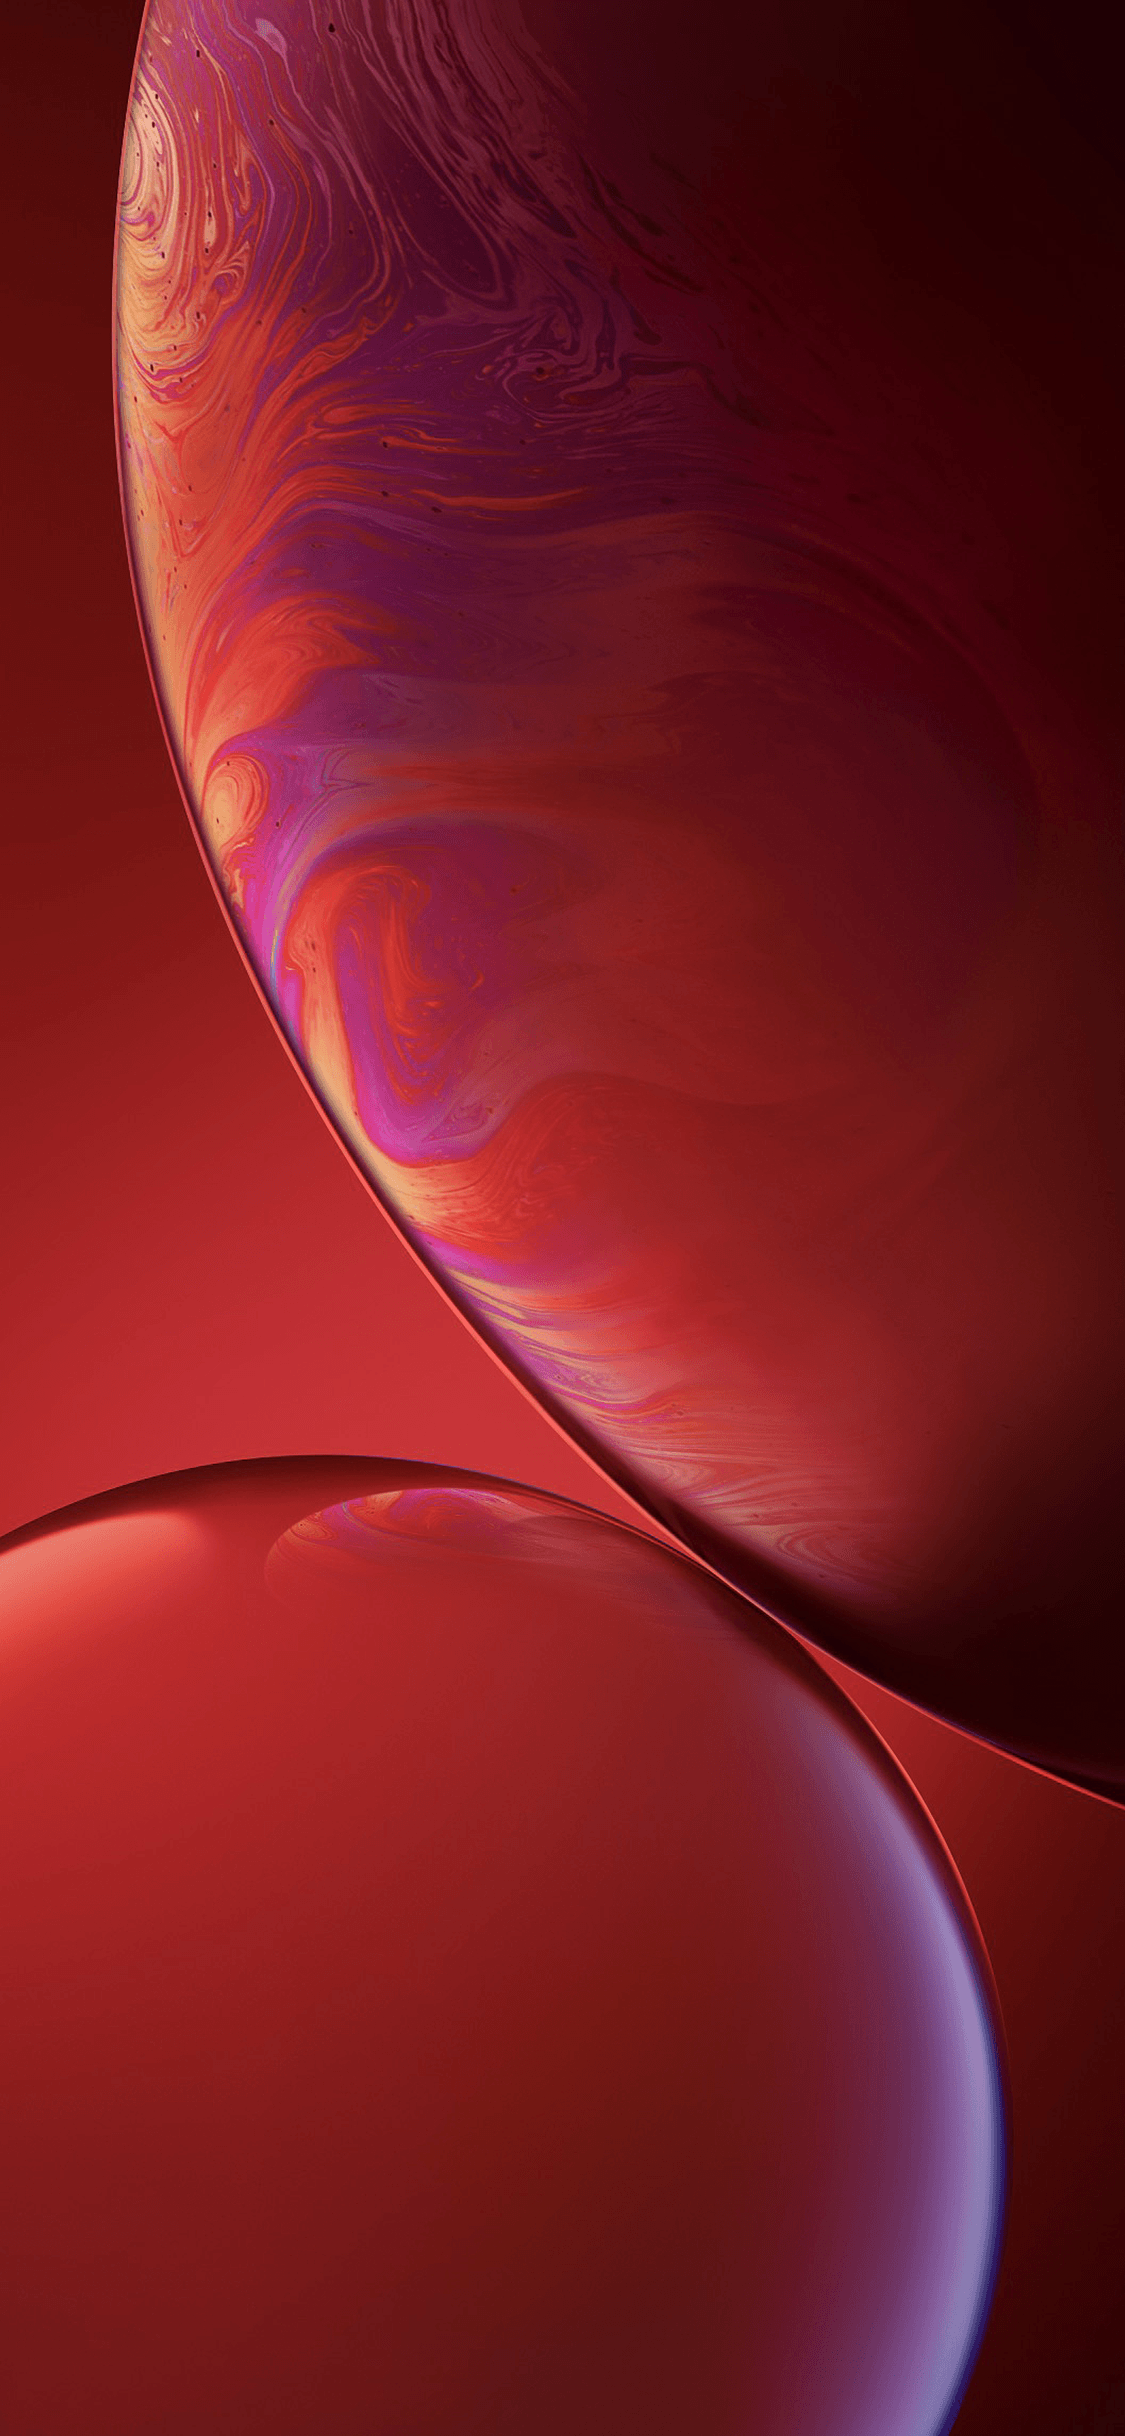 Apple iPhone XR Wallpapers on WallpaperDog